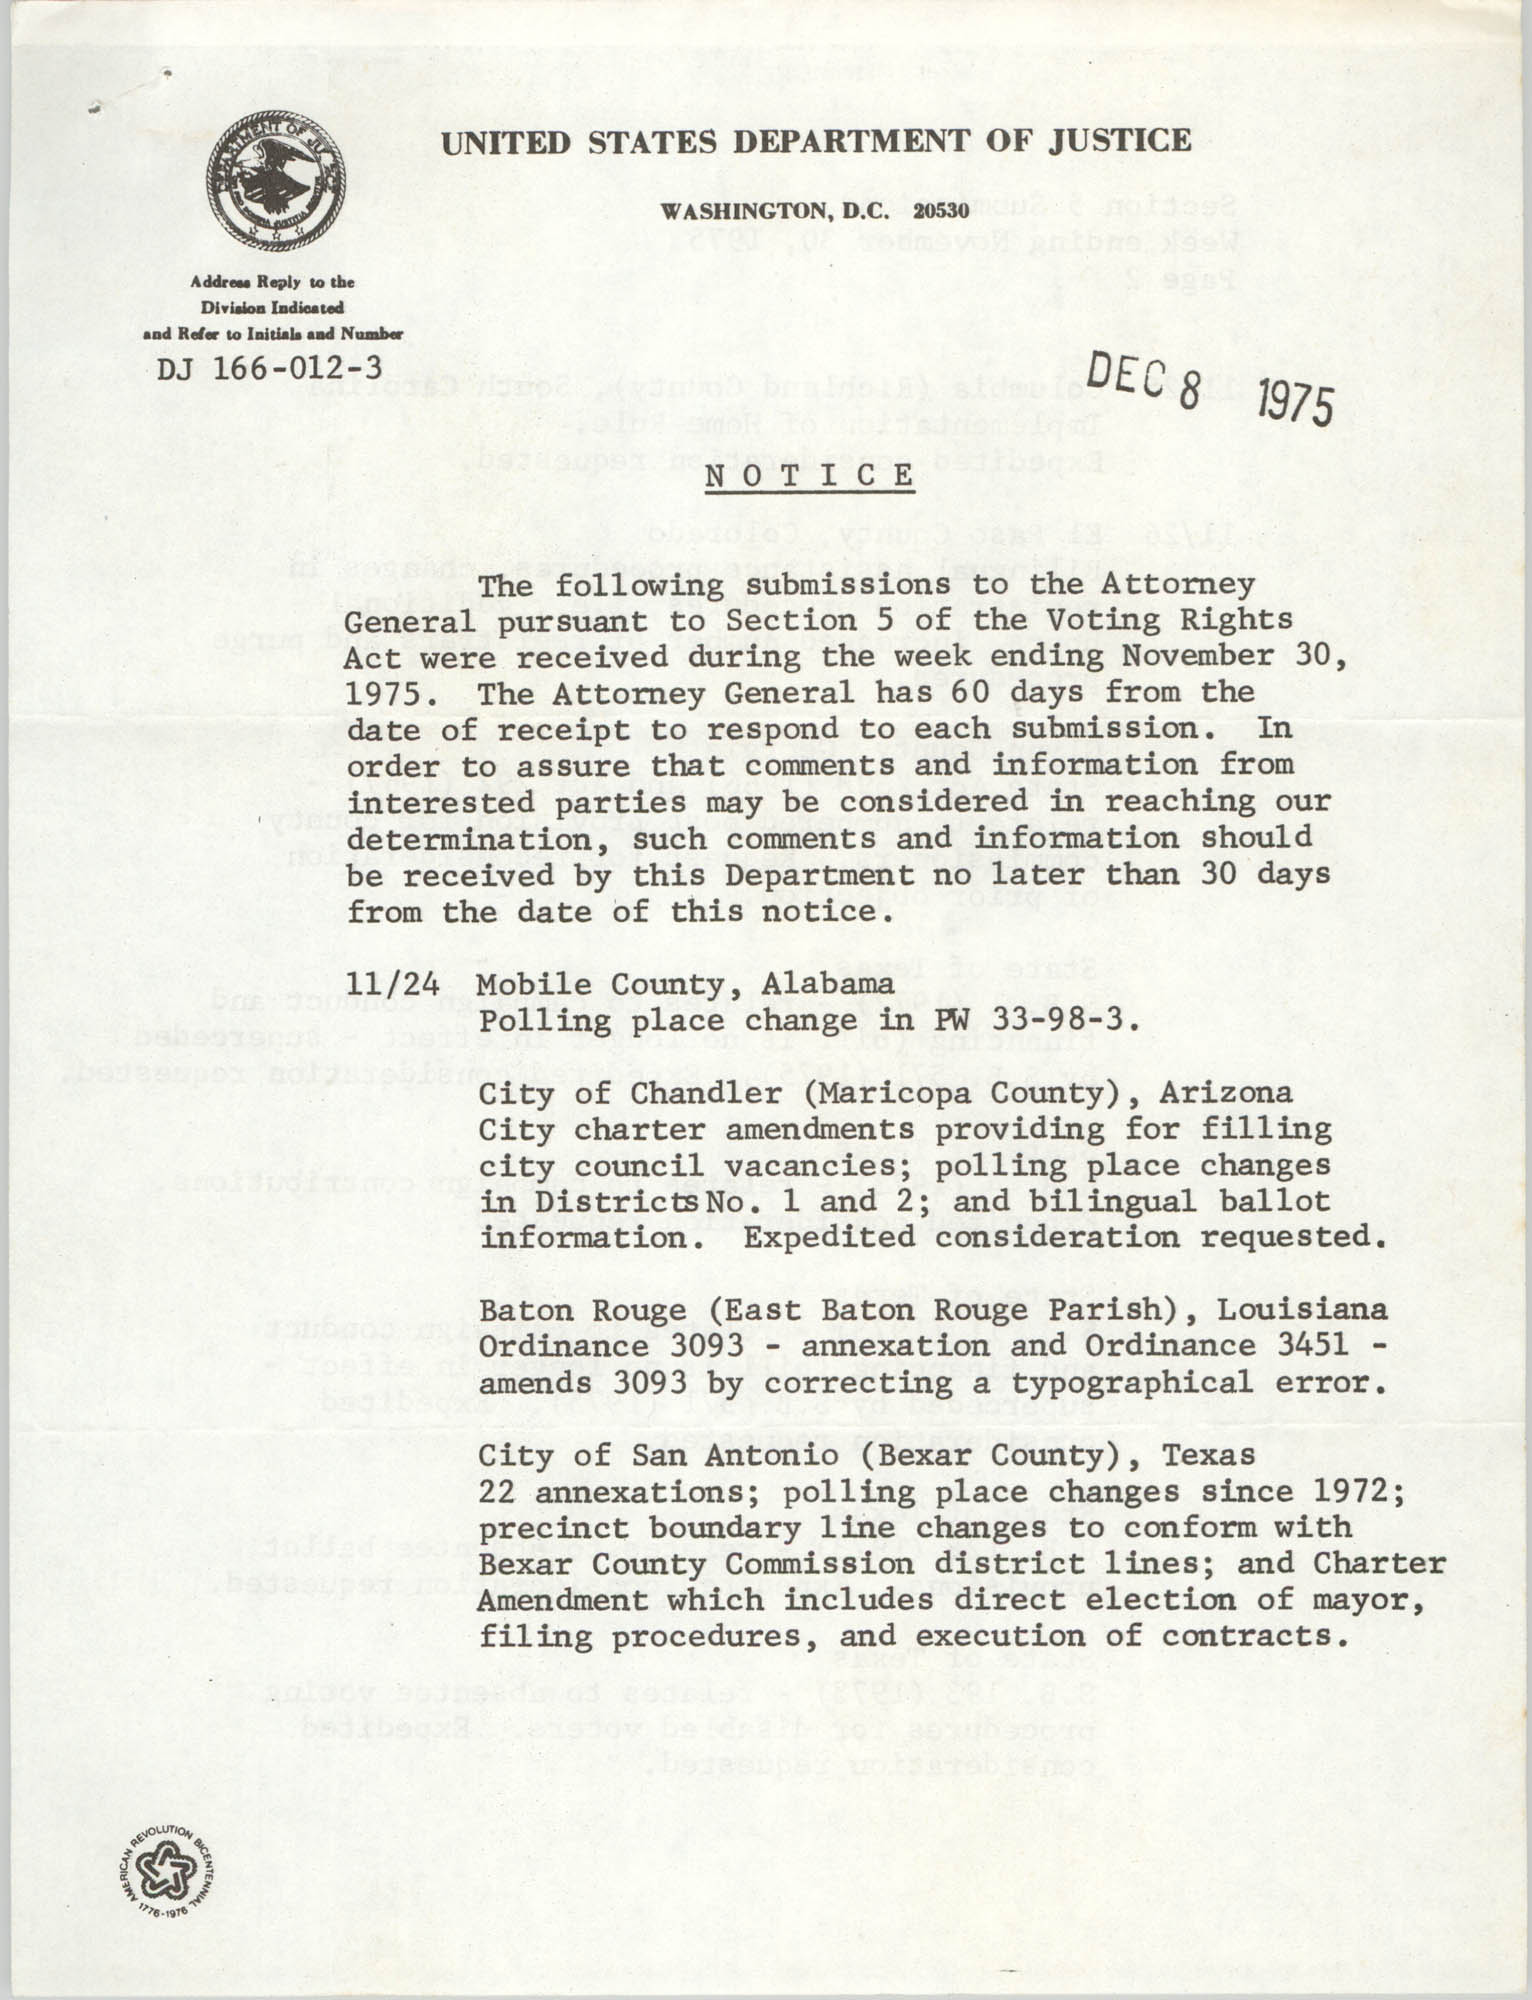 United States Department of Justice Notice, December 8, 1975